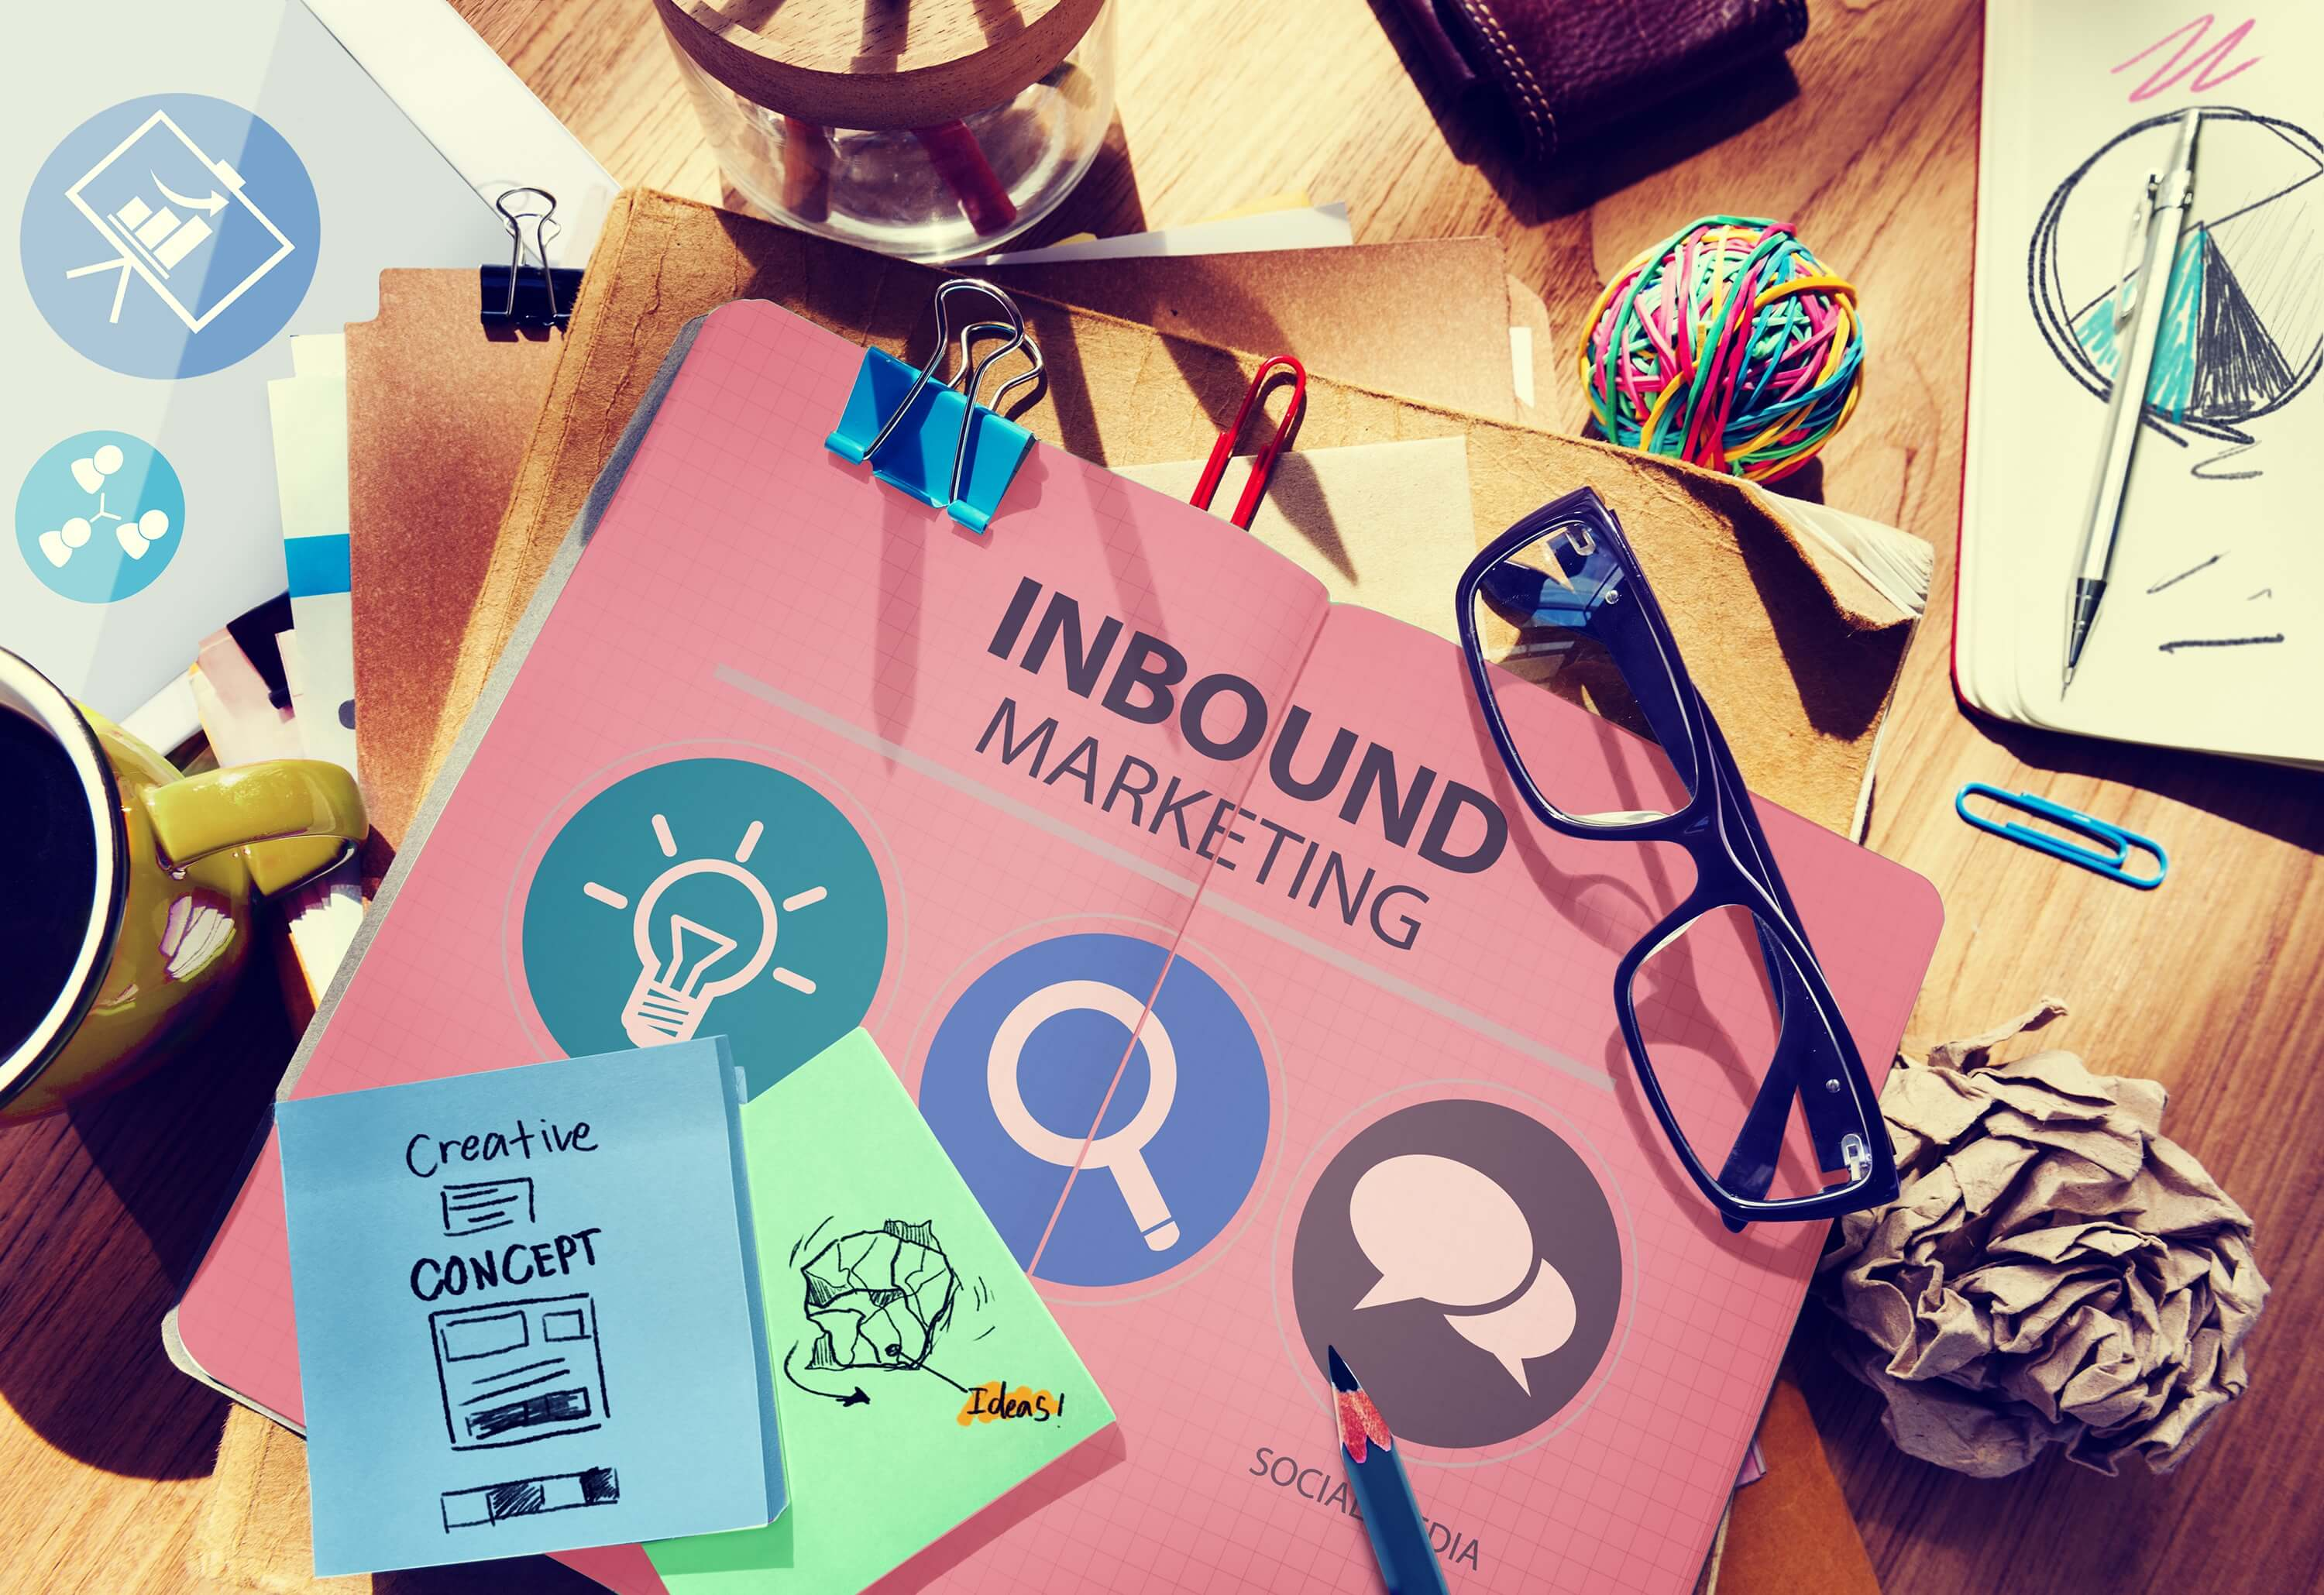 Atrae más clientes con Inbound Marketing